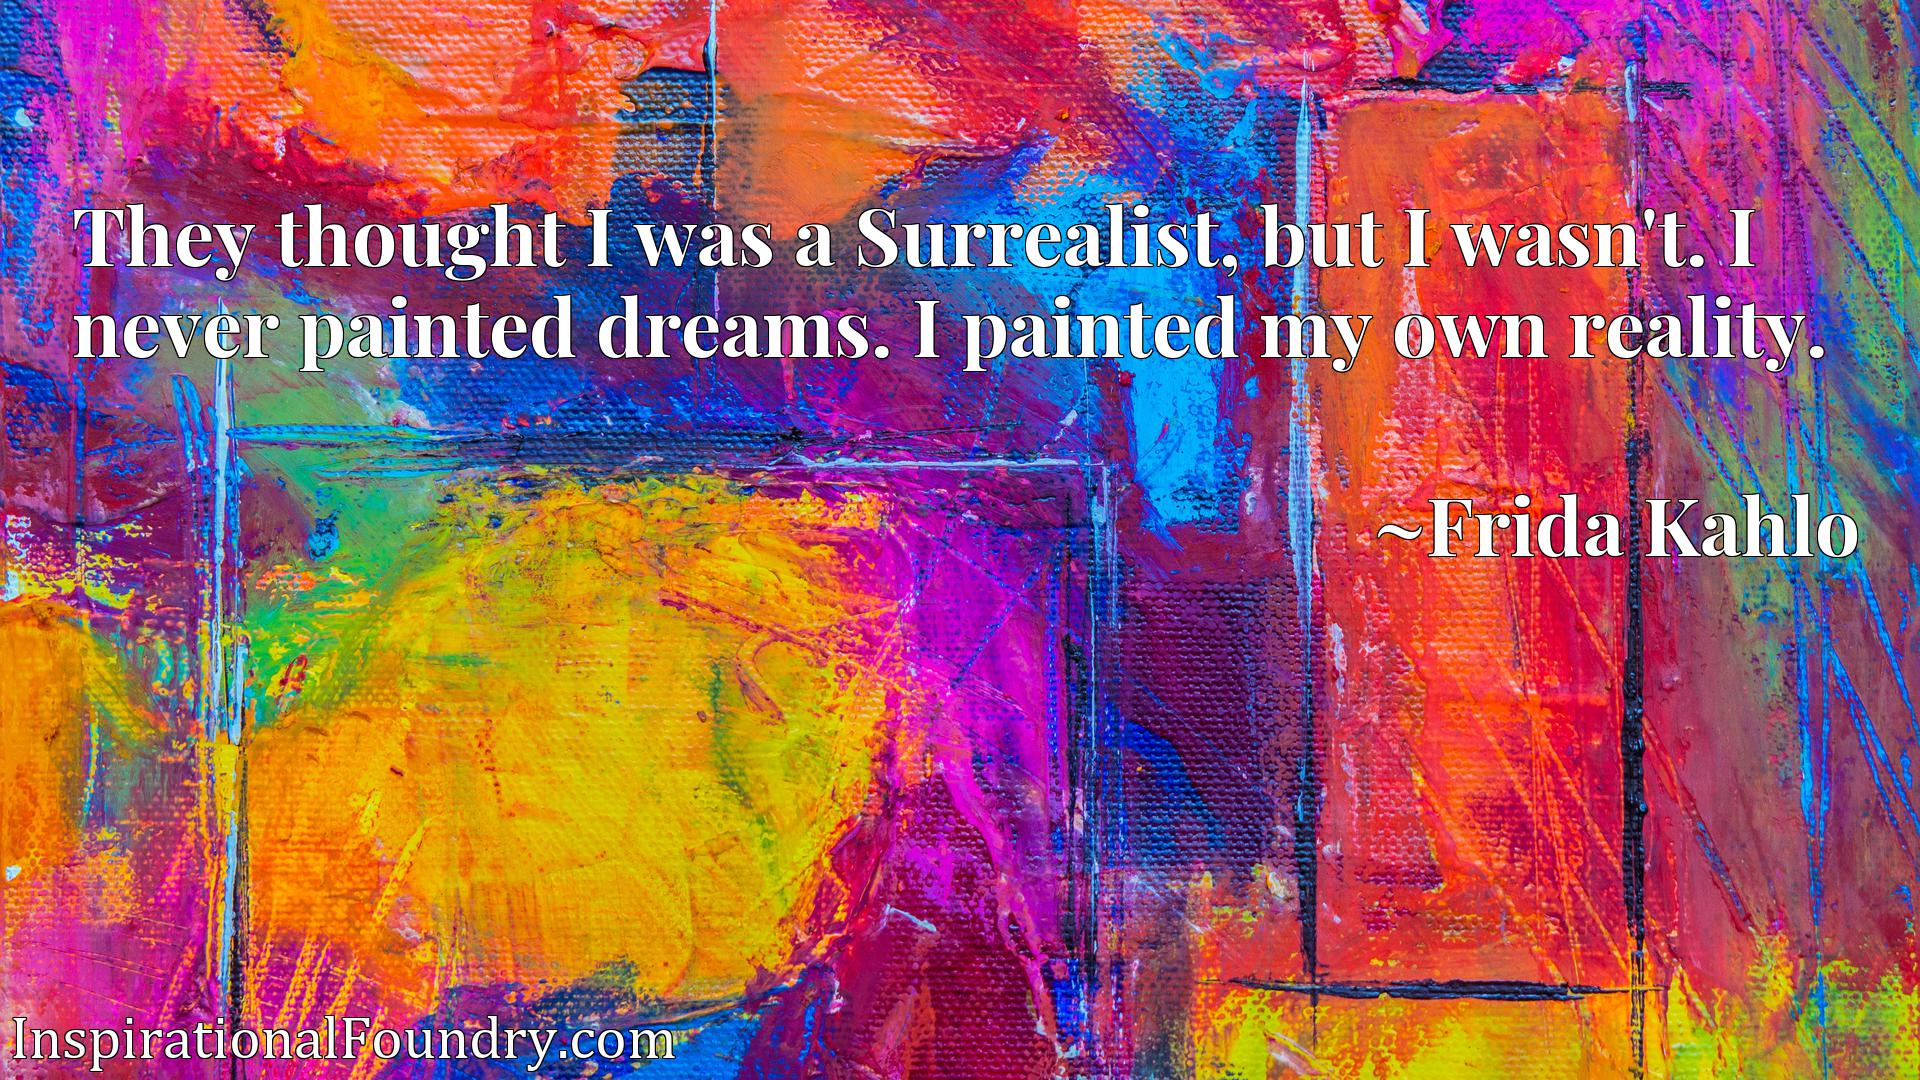 They thought I was a Surrealist, but I wasn't. I never painted dreams. I painted my own reality.